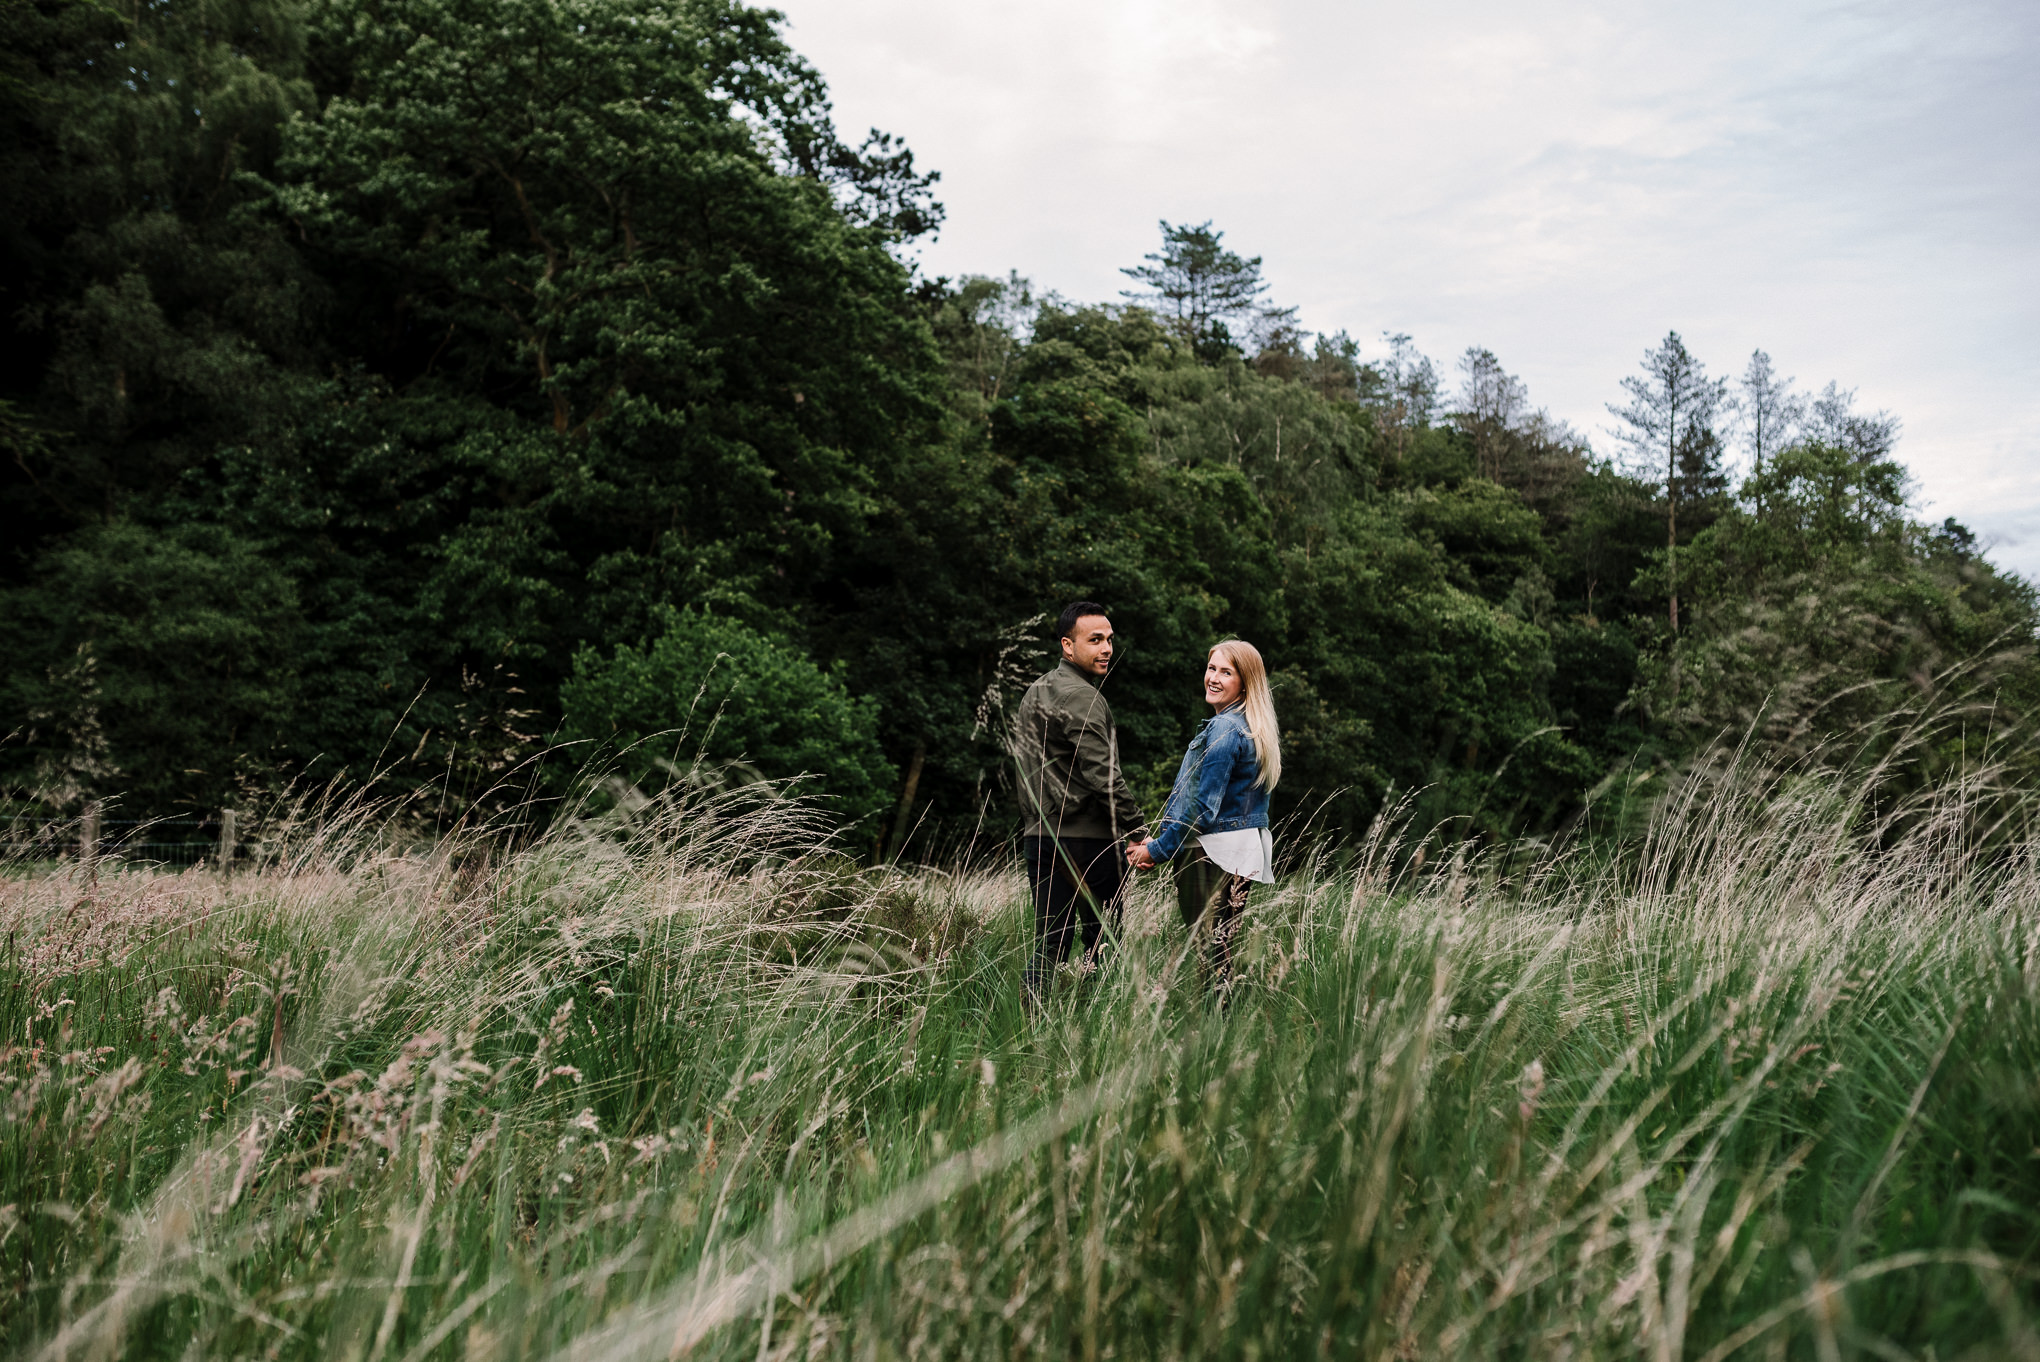 Walking in long grass at Entwistle Reservoir. Natural photography, Lancashire